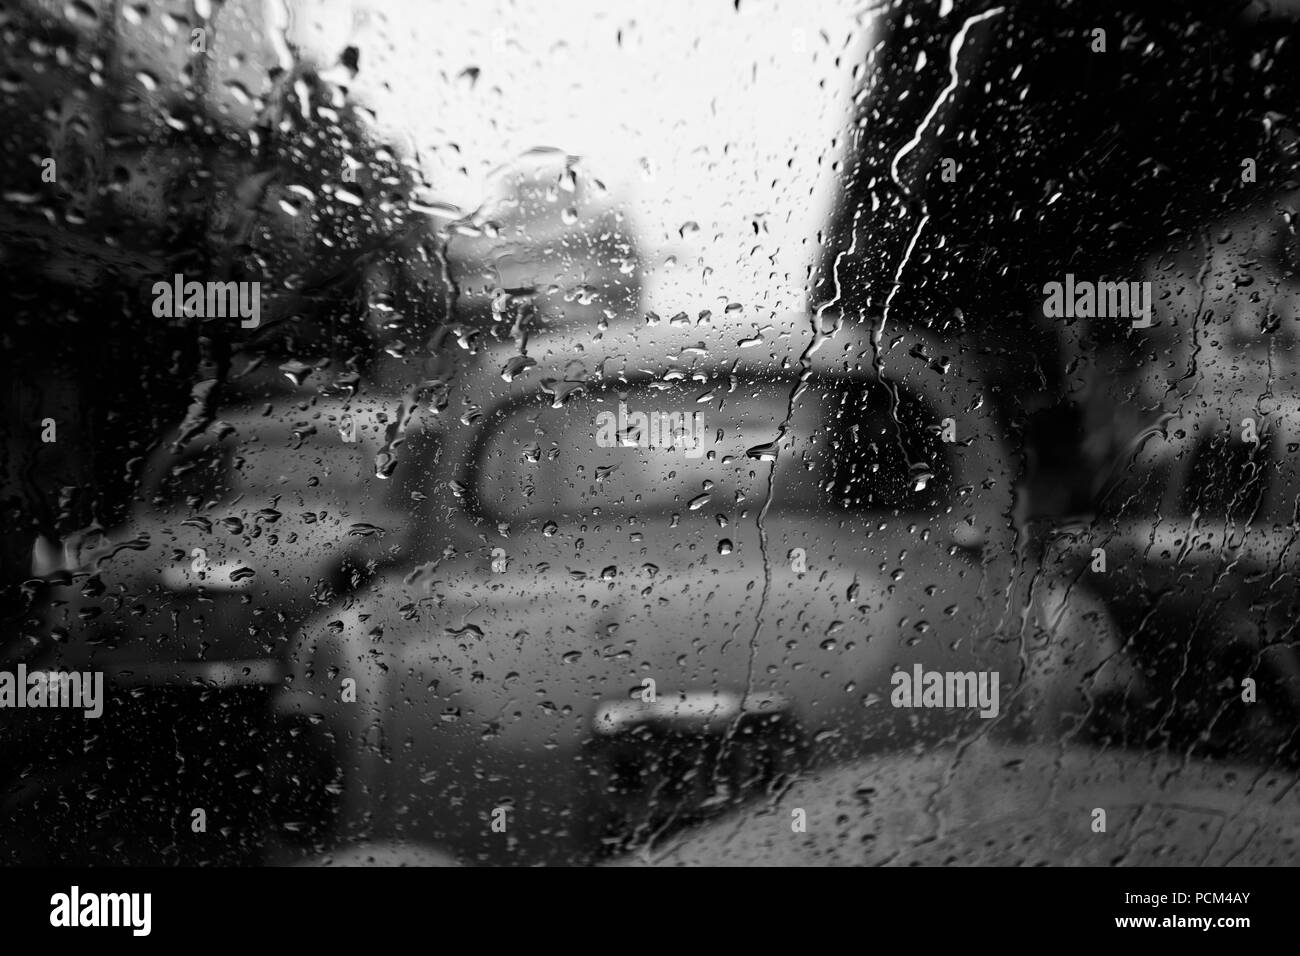 Rain drops on glass in focus out of focus cab in black white kolkata